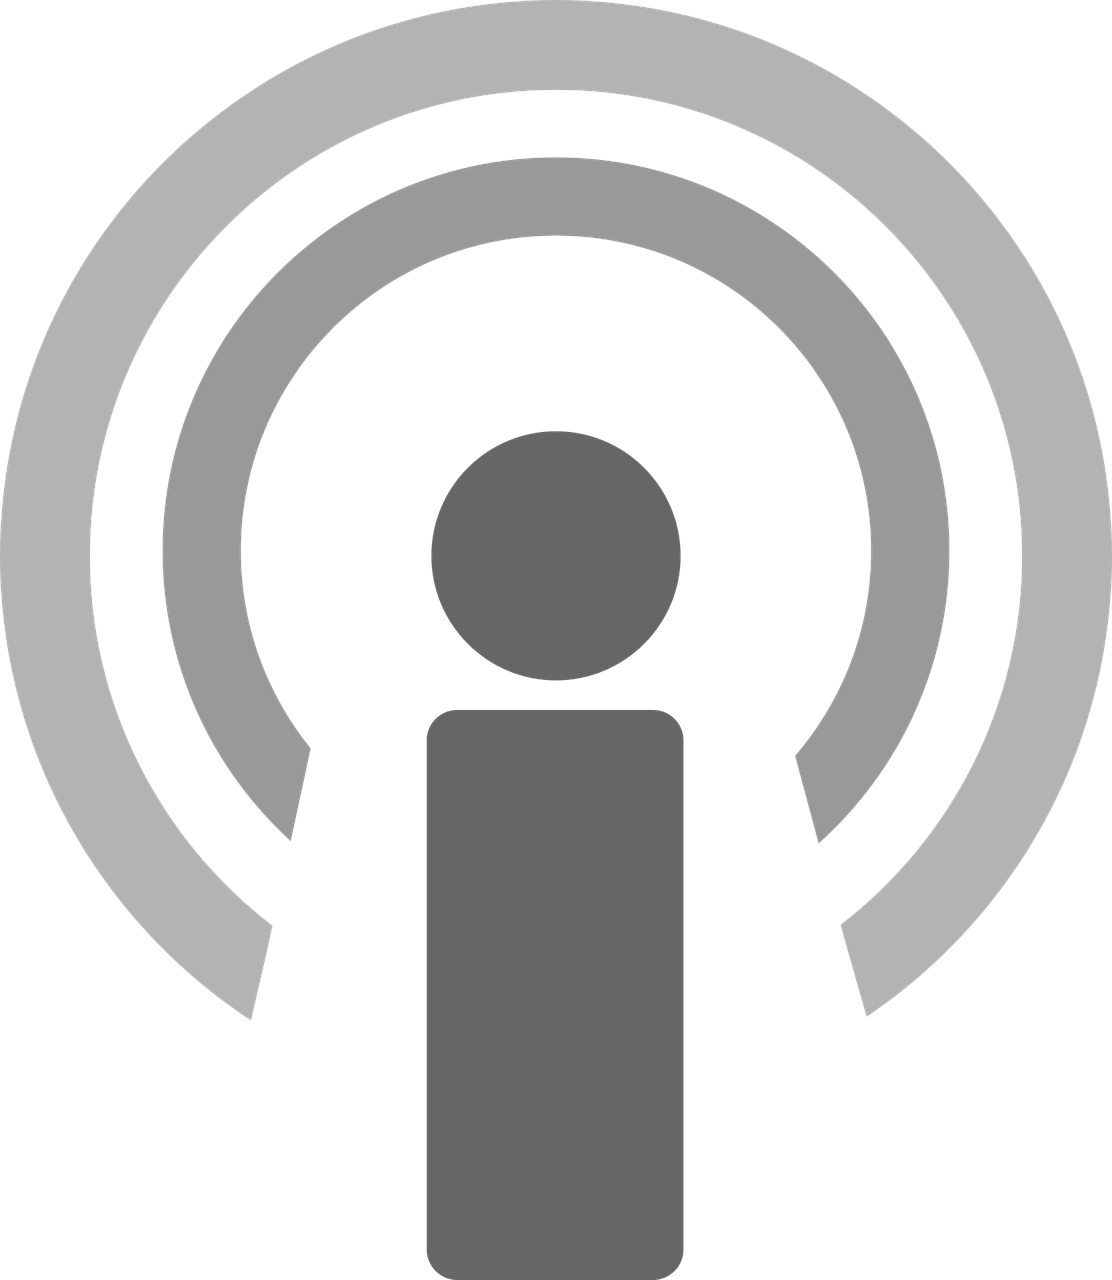 podcast-icon-1322239_1280